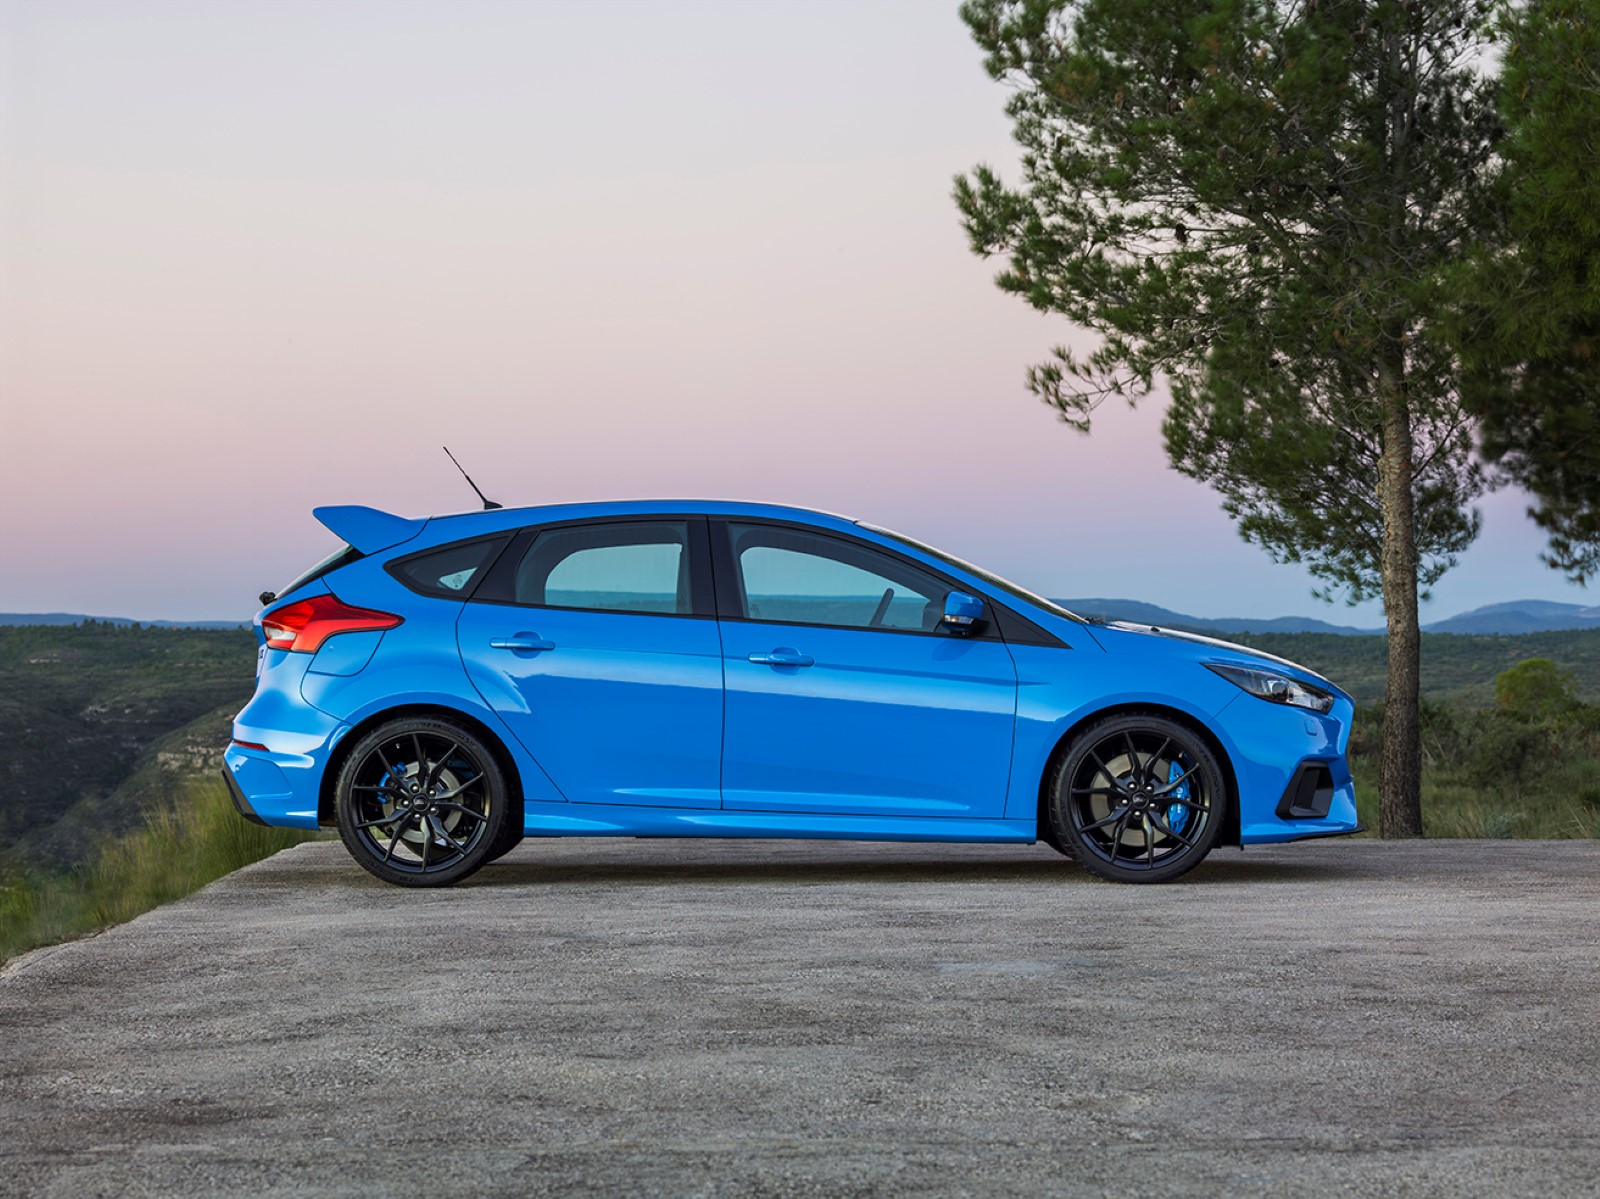 2016 ford focus rs nearly sold out in the uk only 500 left gtspirit. Black Bedroom Furniture Sets. Home Design Ideas